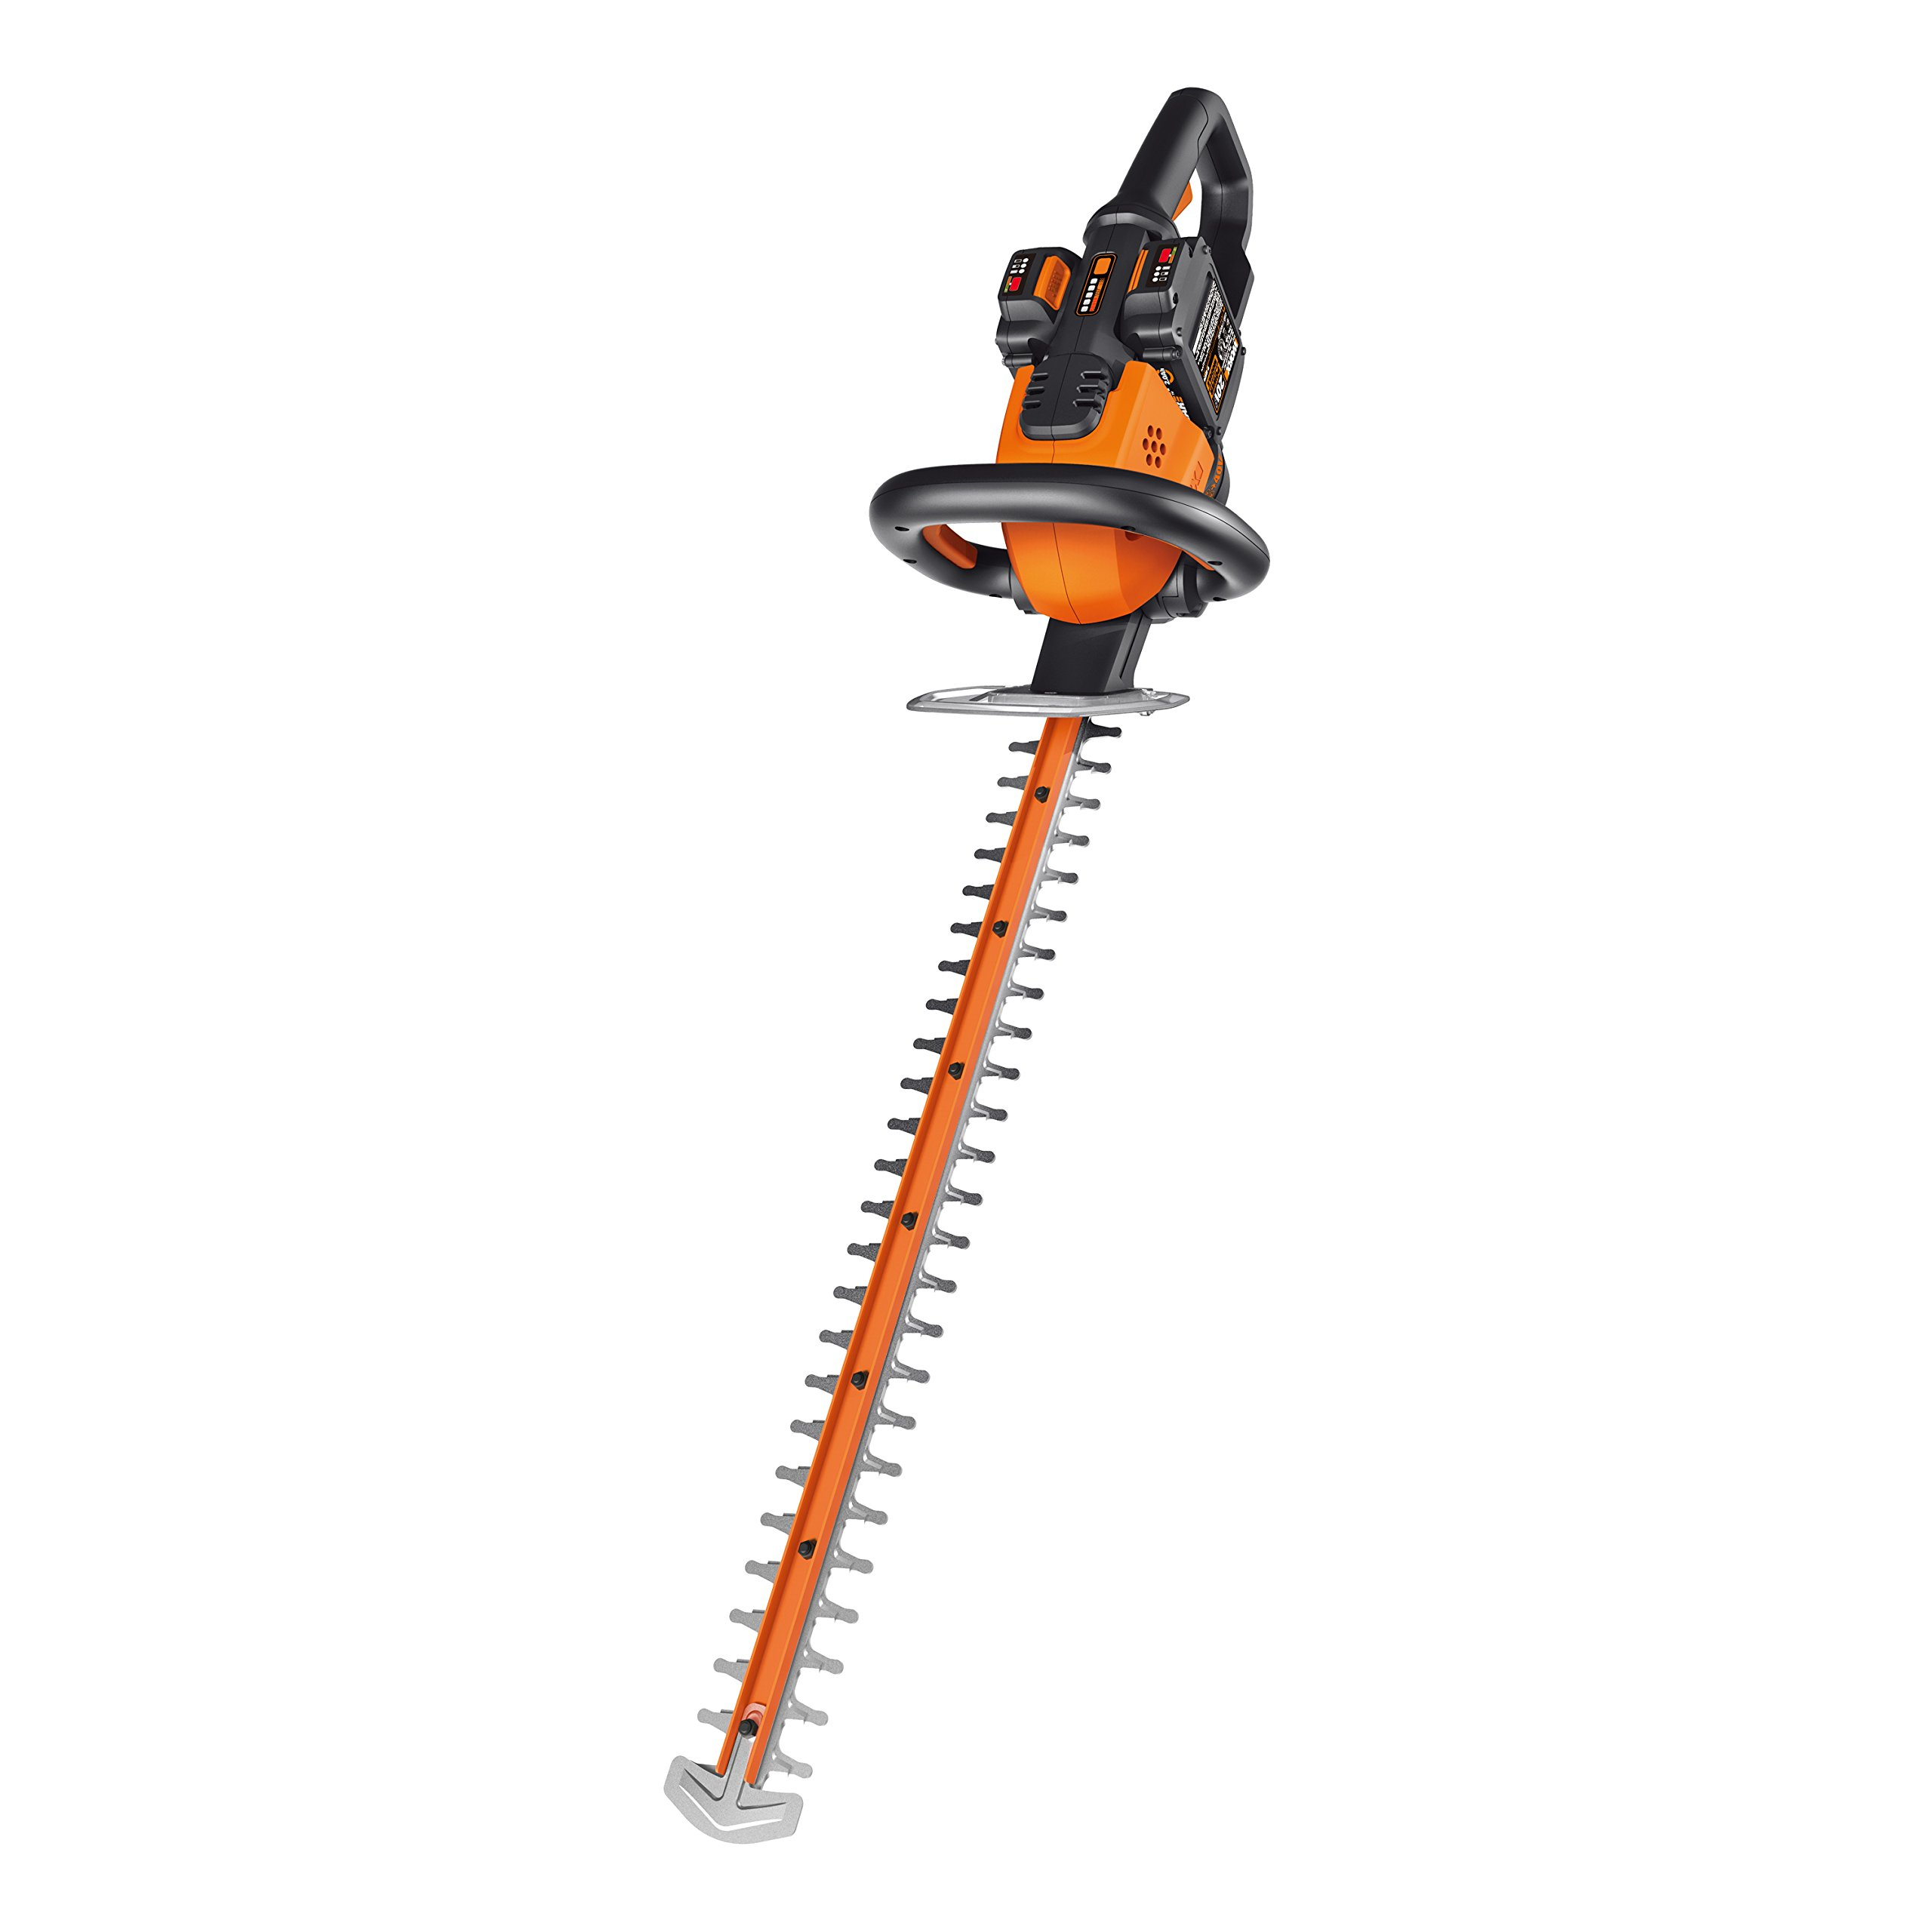 Worx WG284 2x20V (2.0Ah) 24'' Cordless Hedge Trimmer, 1 hr. Dual Charger and 2 Batteries Included